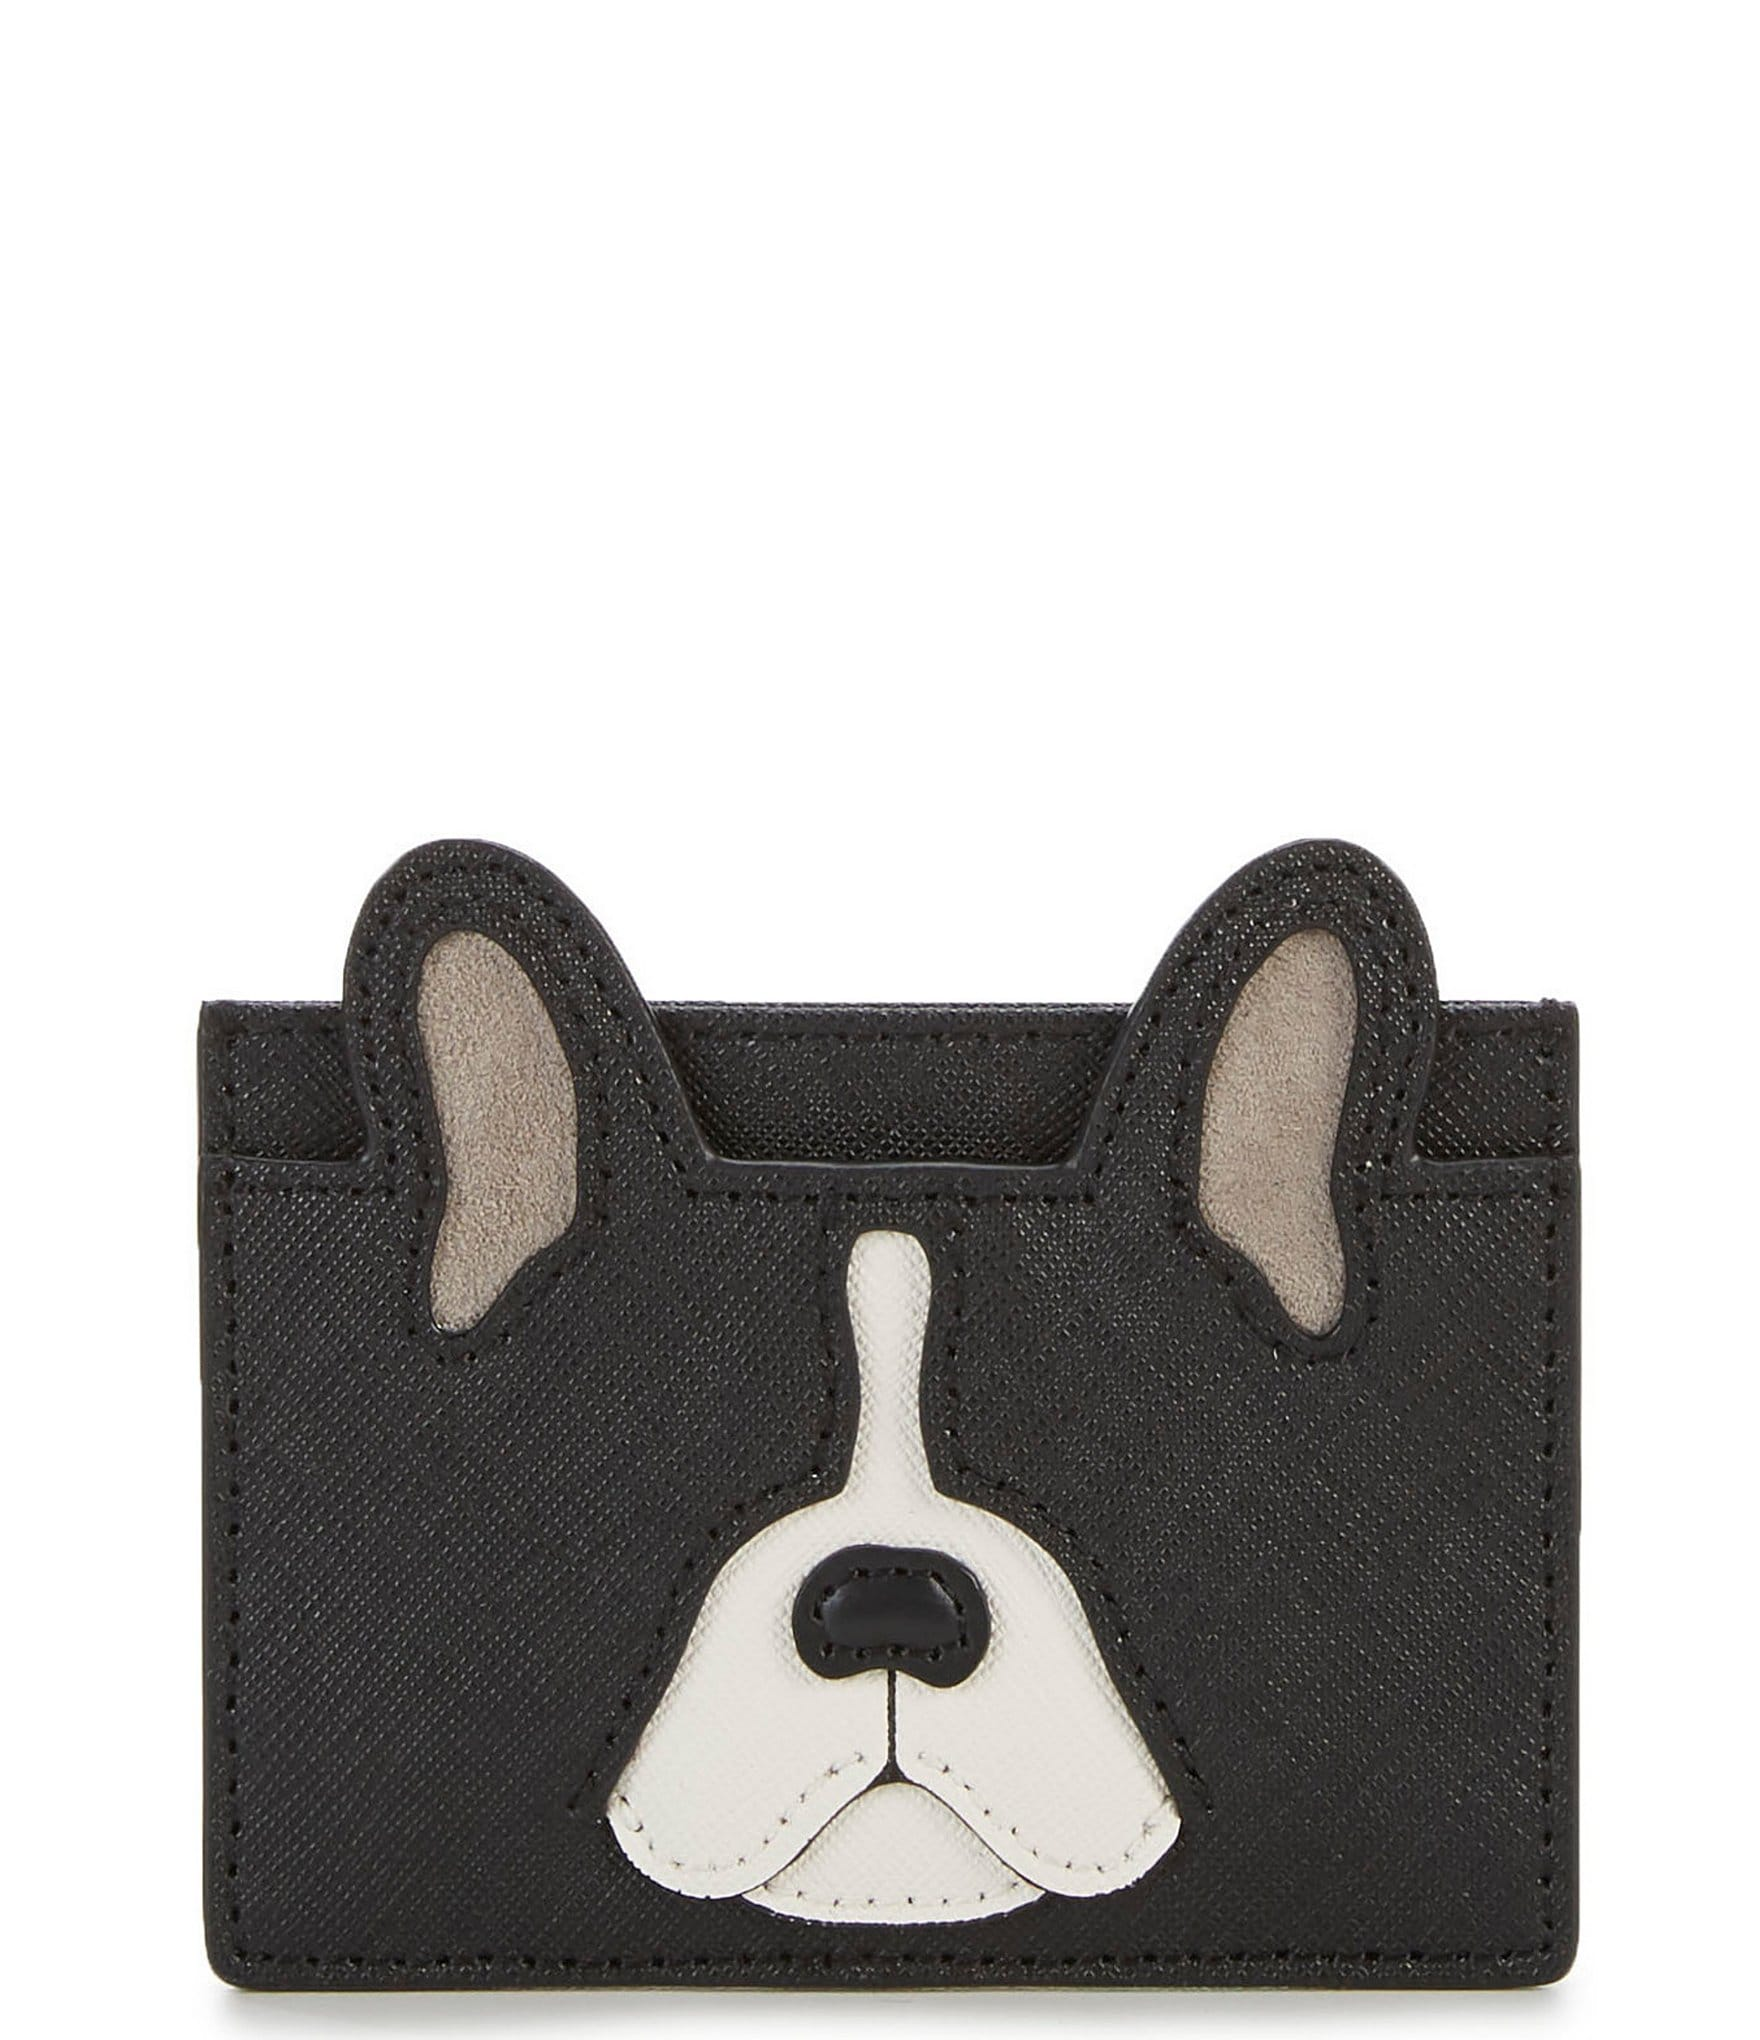 https://dimg.dillards.com/is/image/DillardsZoom/zoom/kate-spade-new-york-ma-cherie-antoine-french-bulldog-applique-card-holder/05093360_zi_multi.jpg